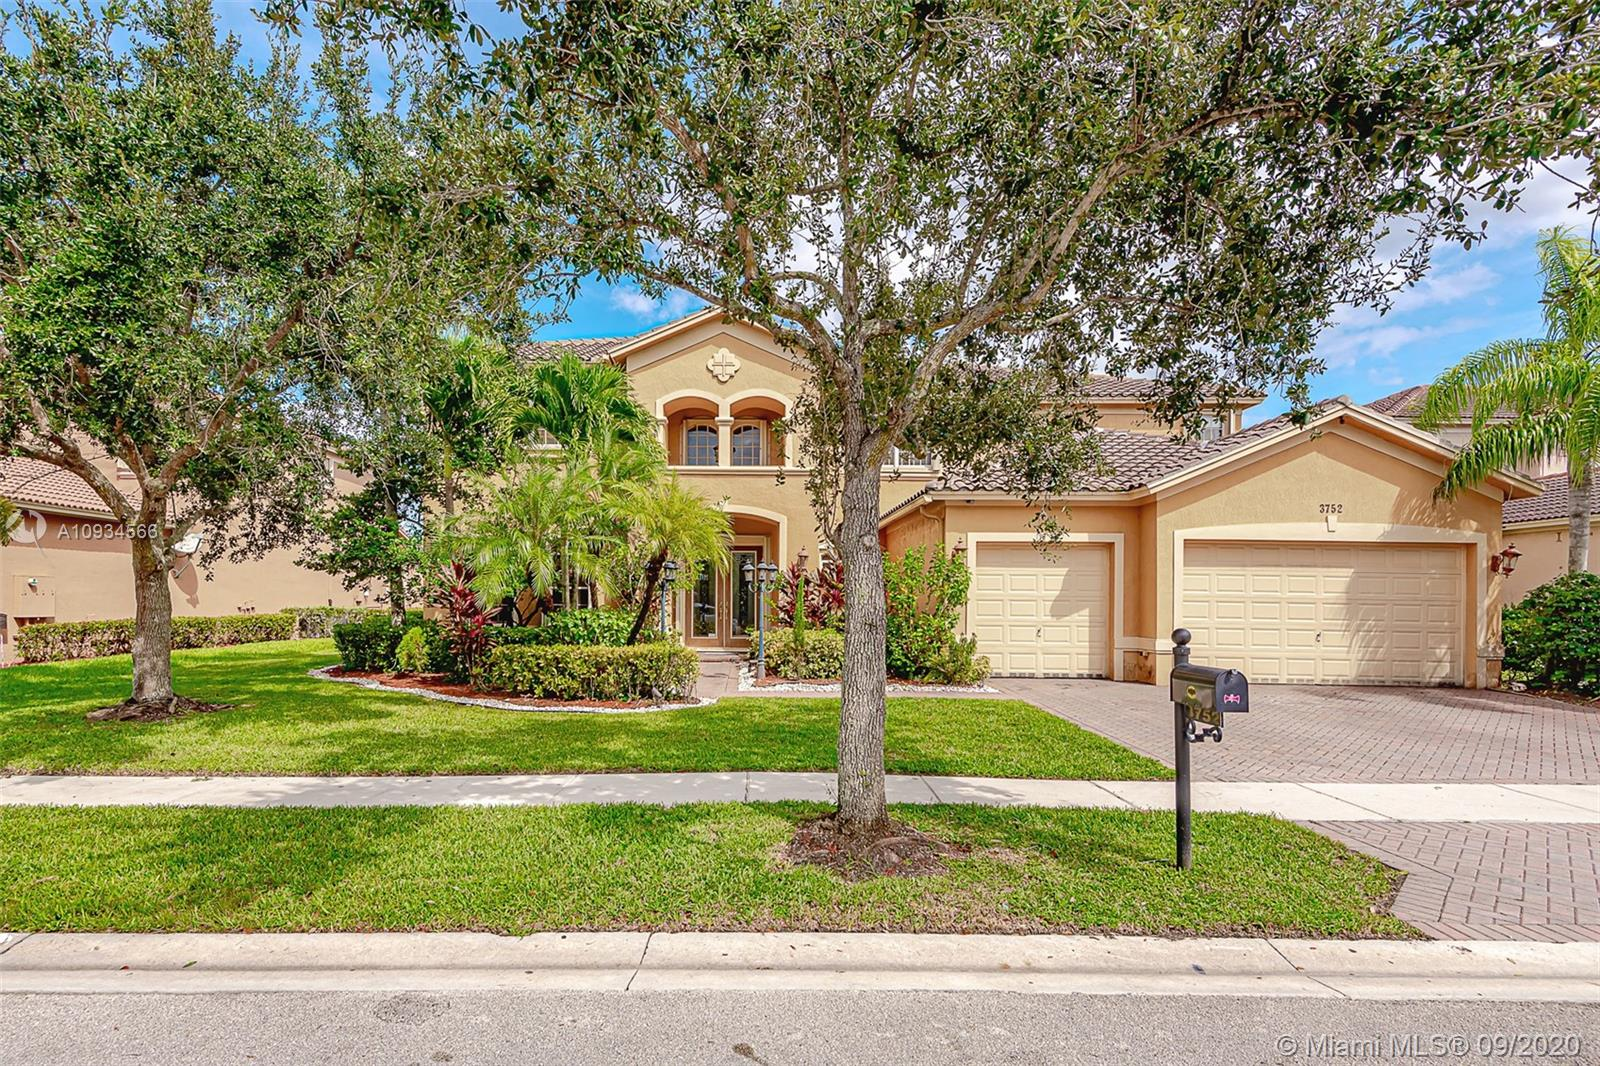 Weston - 3752 W Coquina Way, Weston, FL 33332